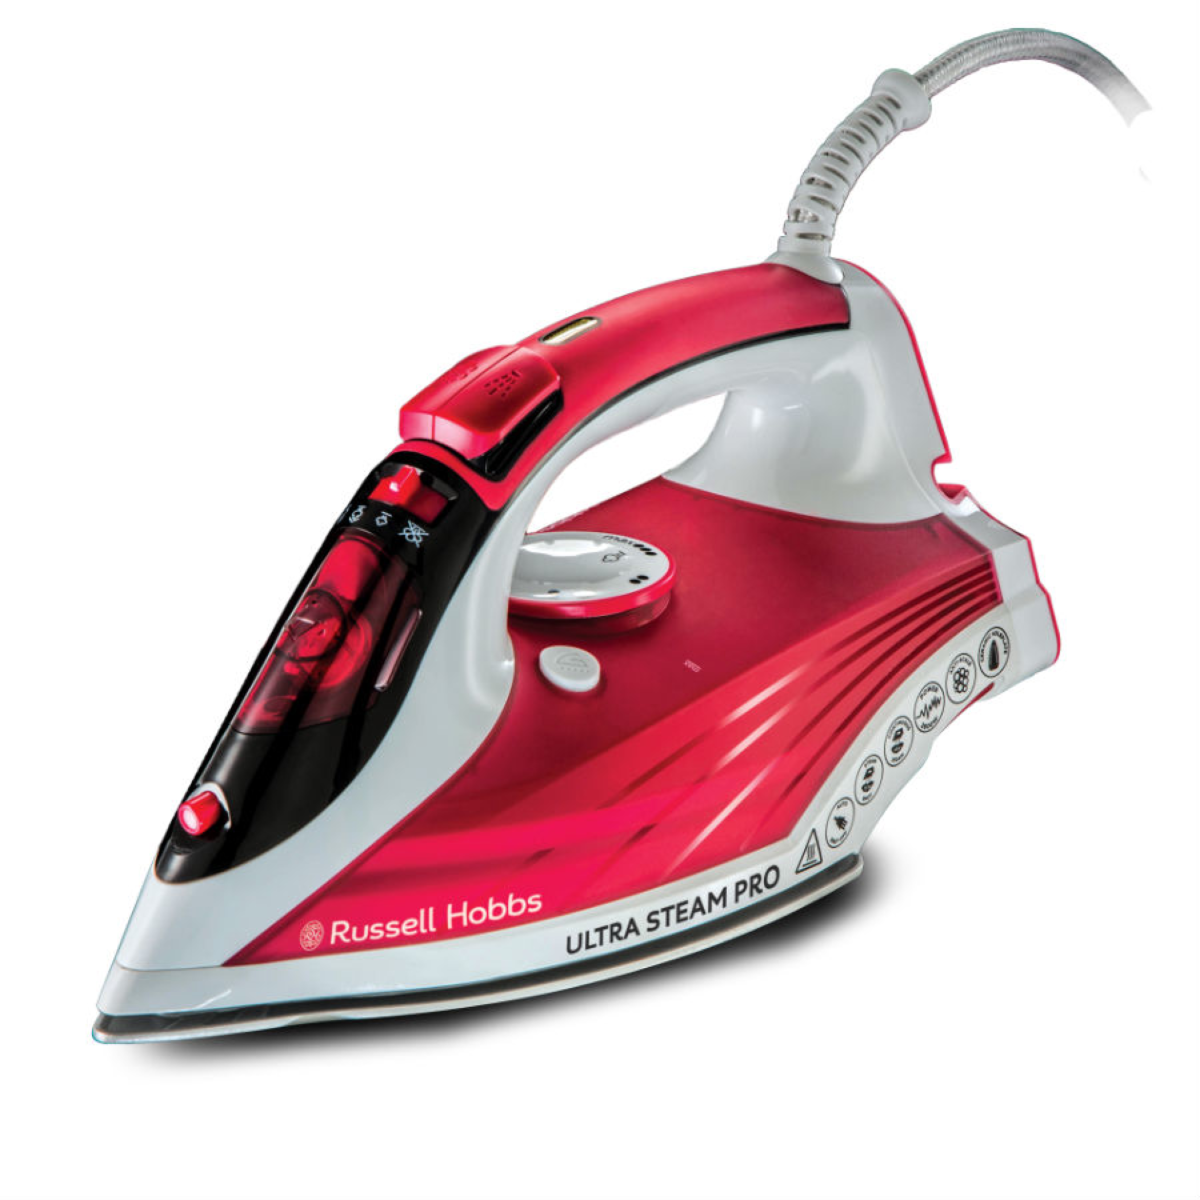 Russell Hobbs 23990 2600W Ultra-Steam Iron - Red